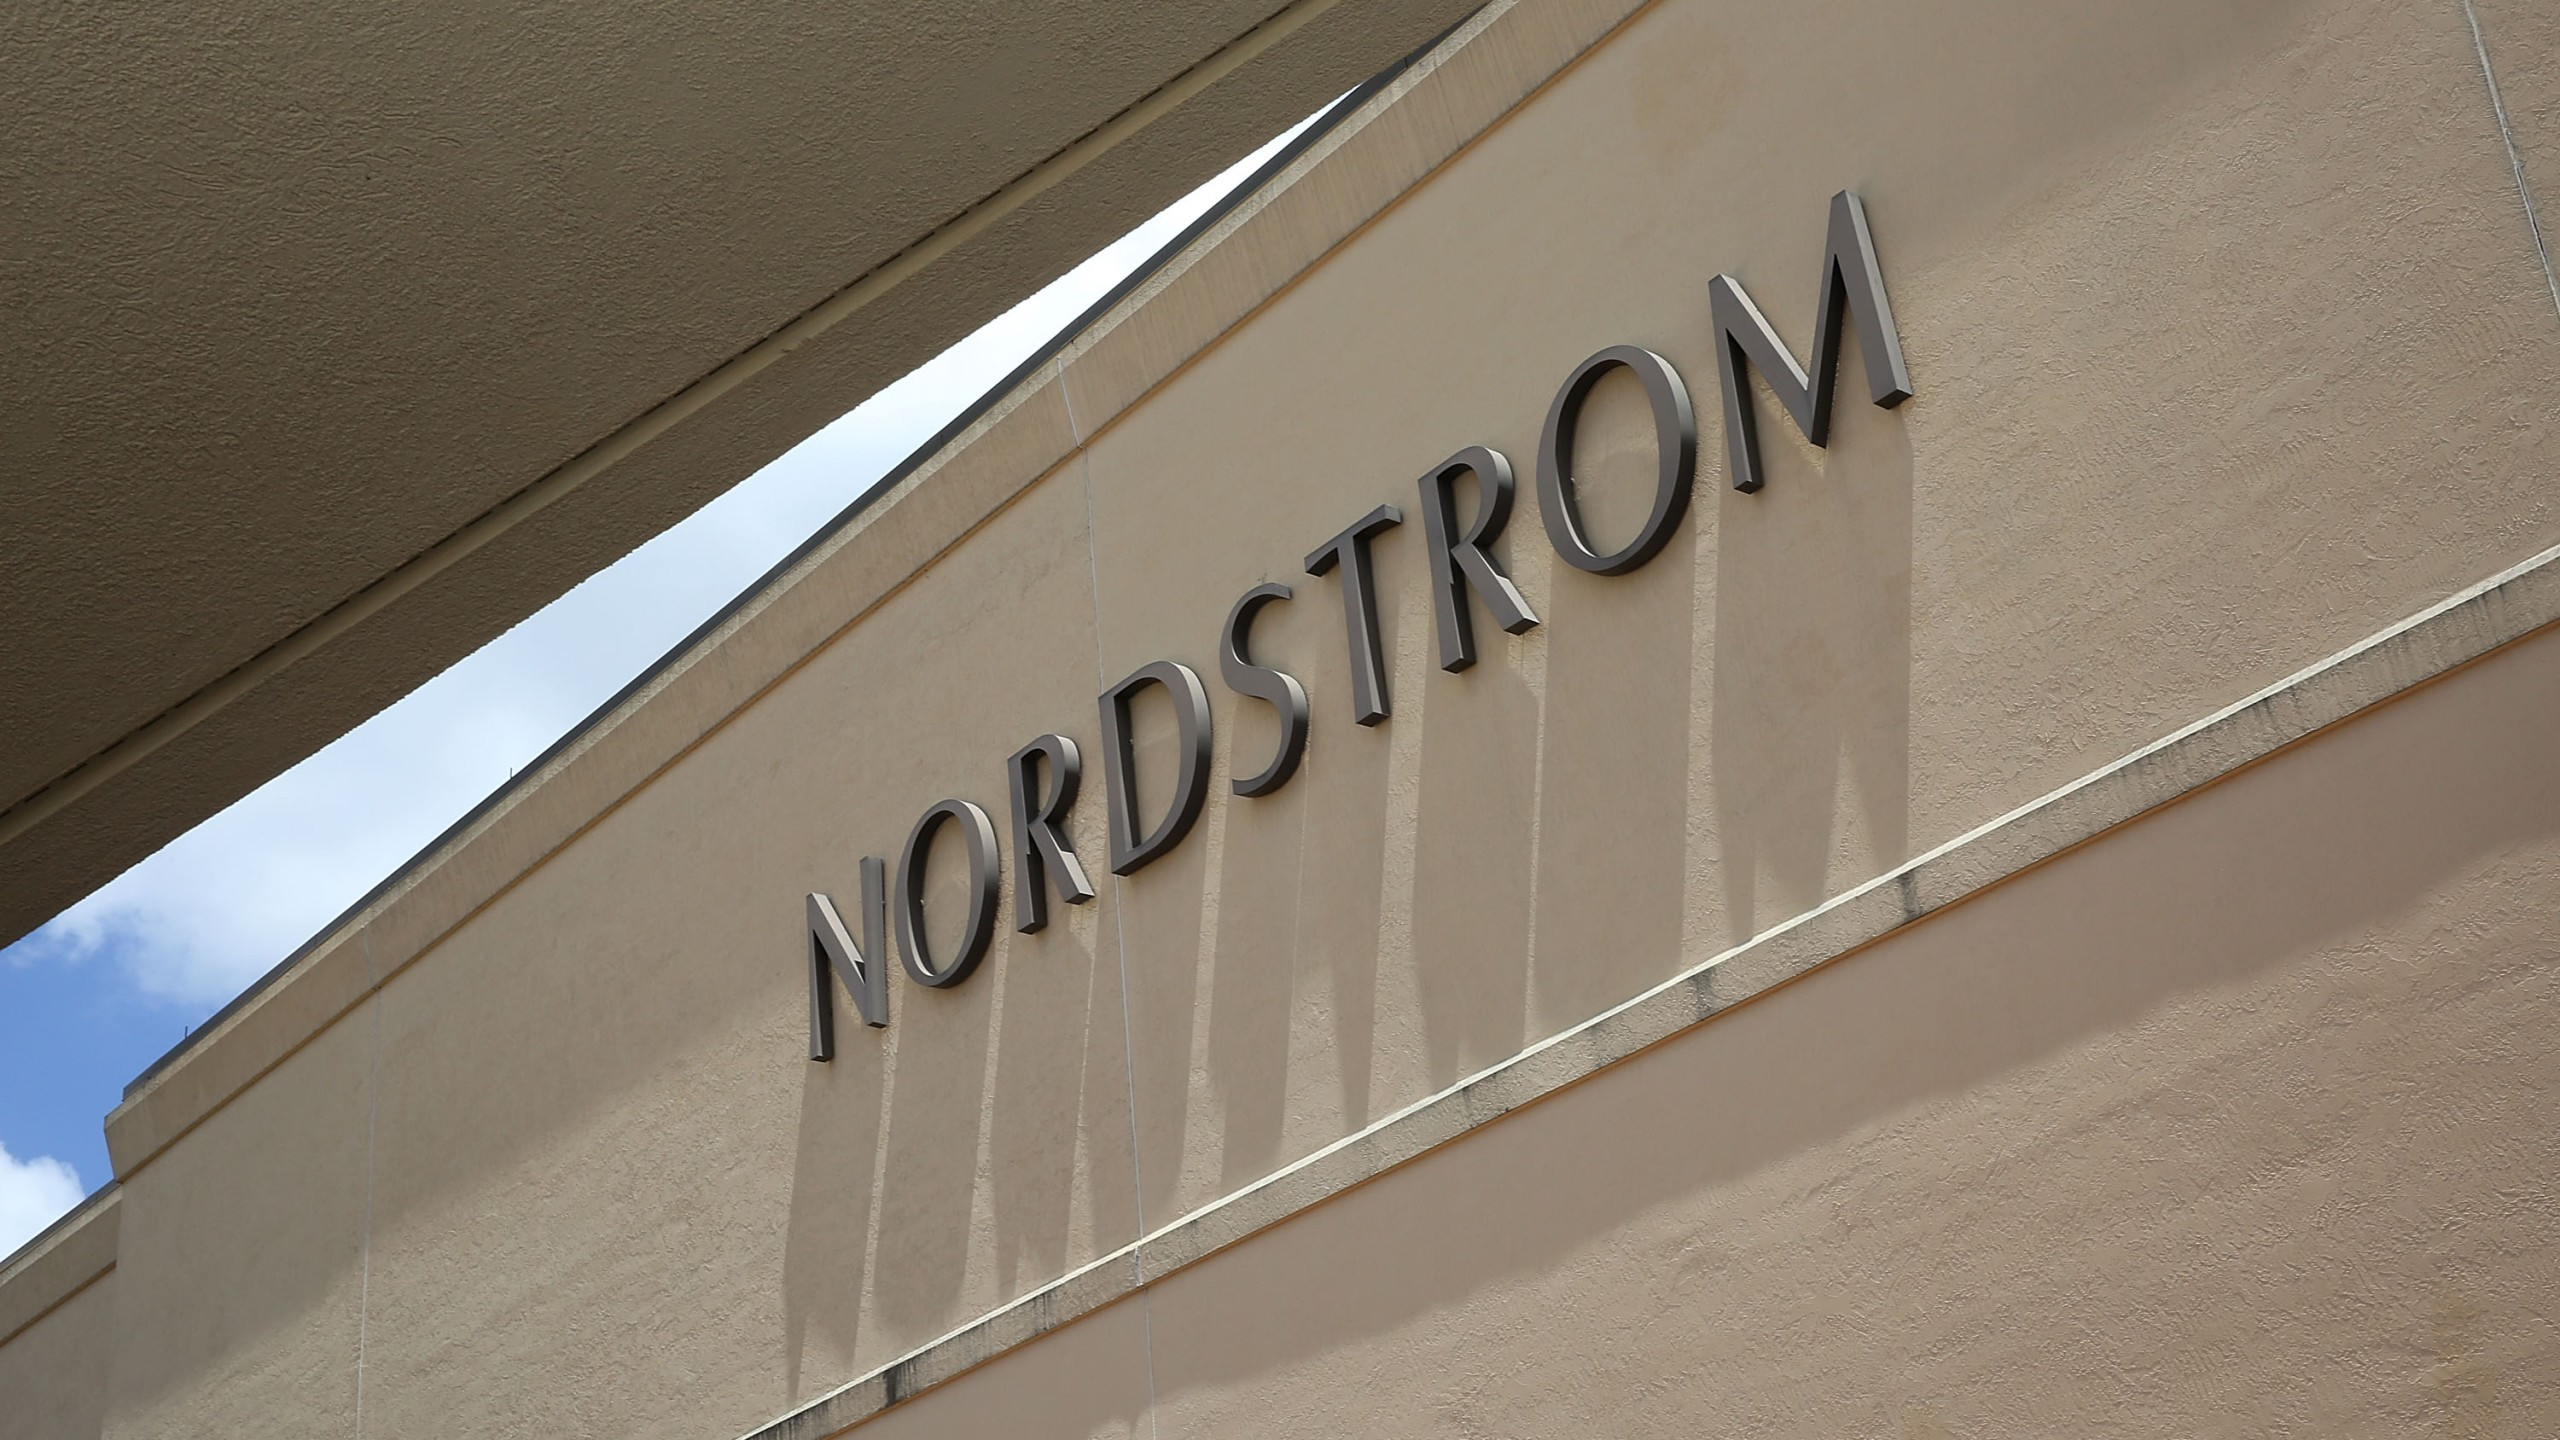 Picture of Nordstrom